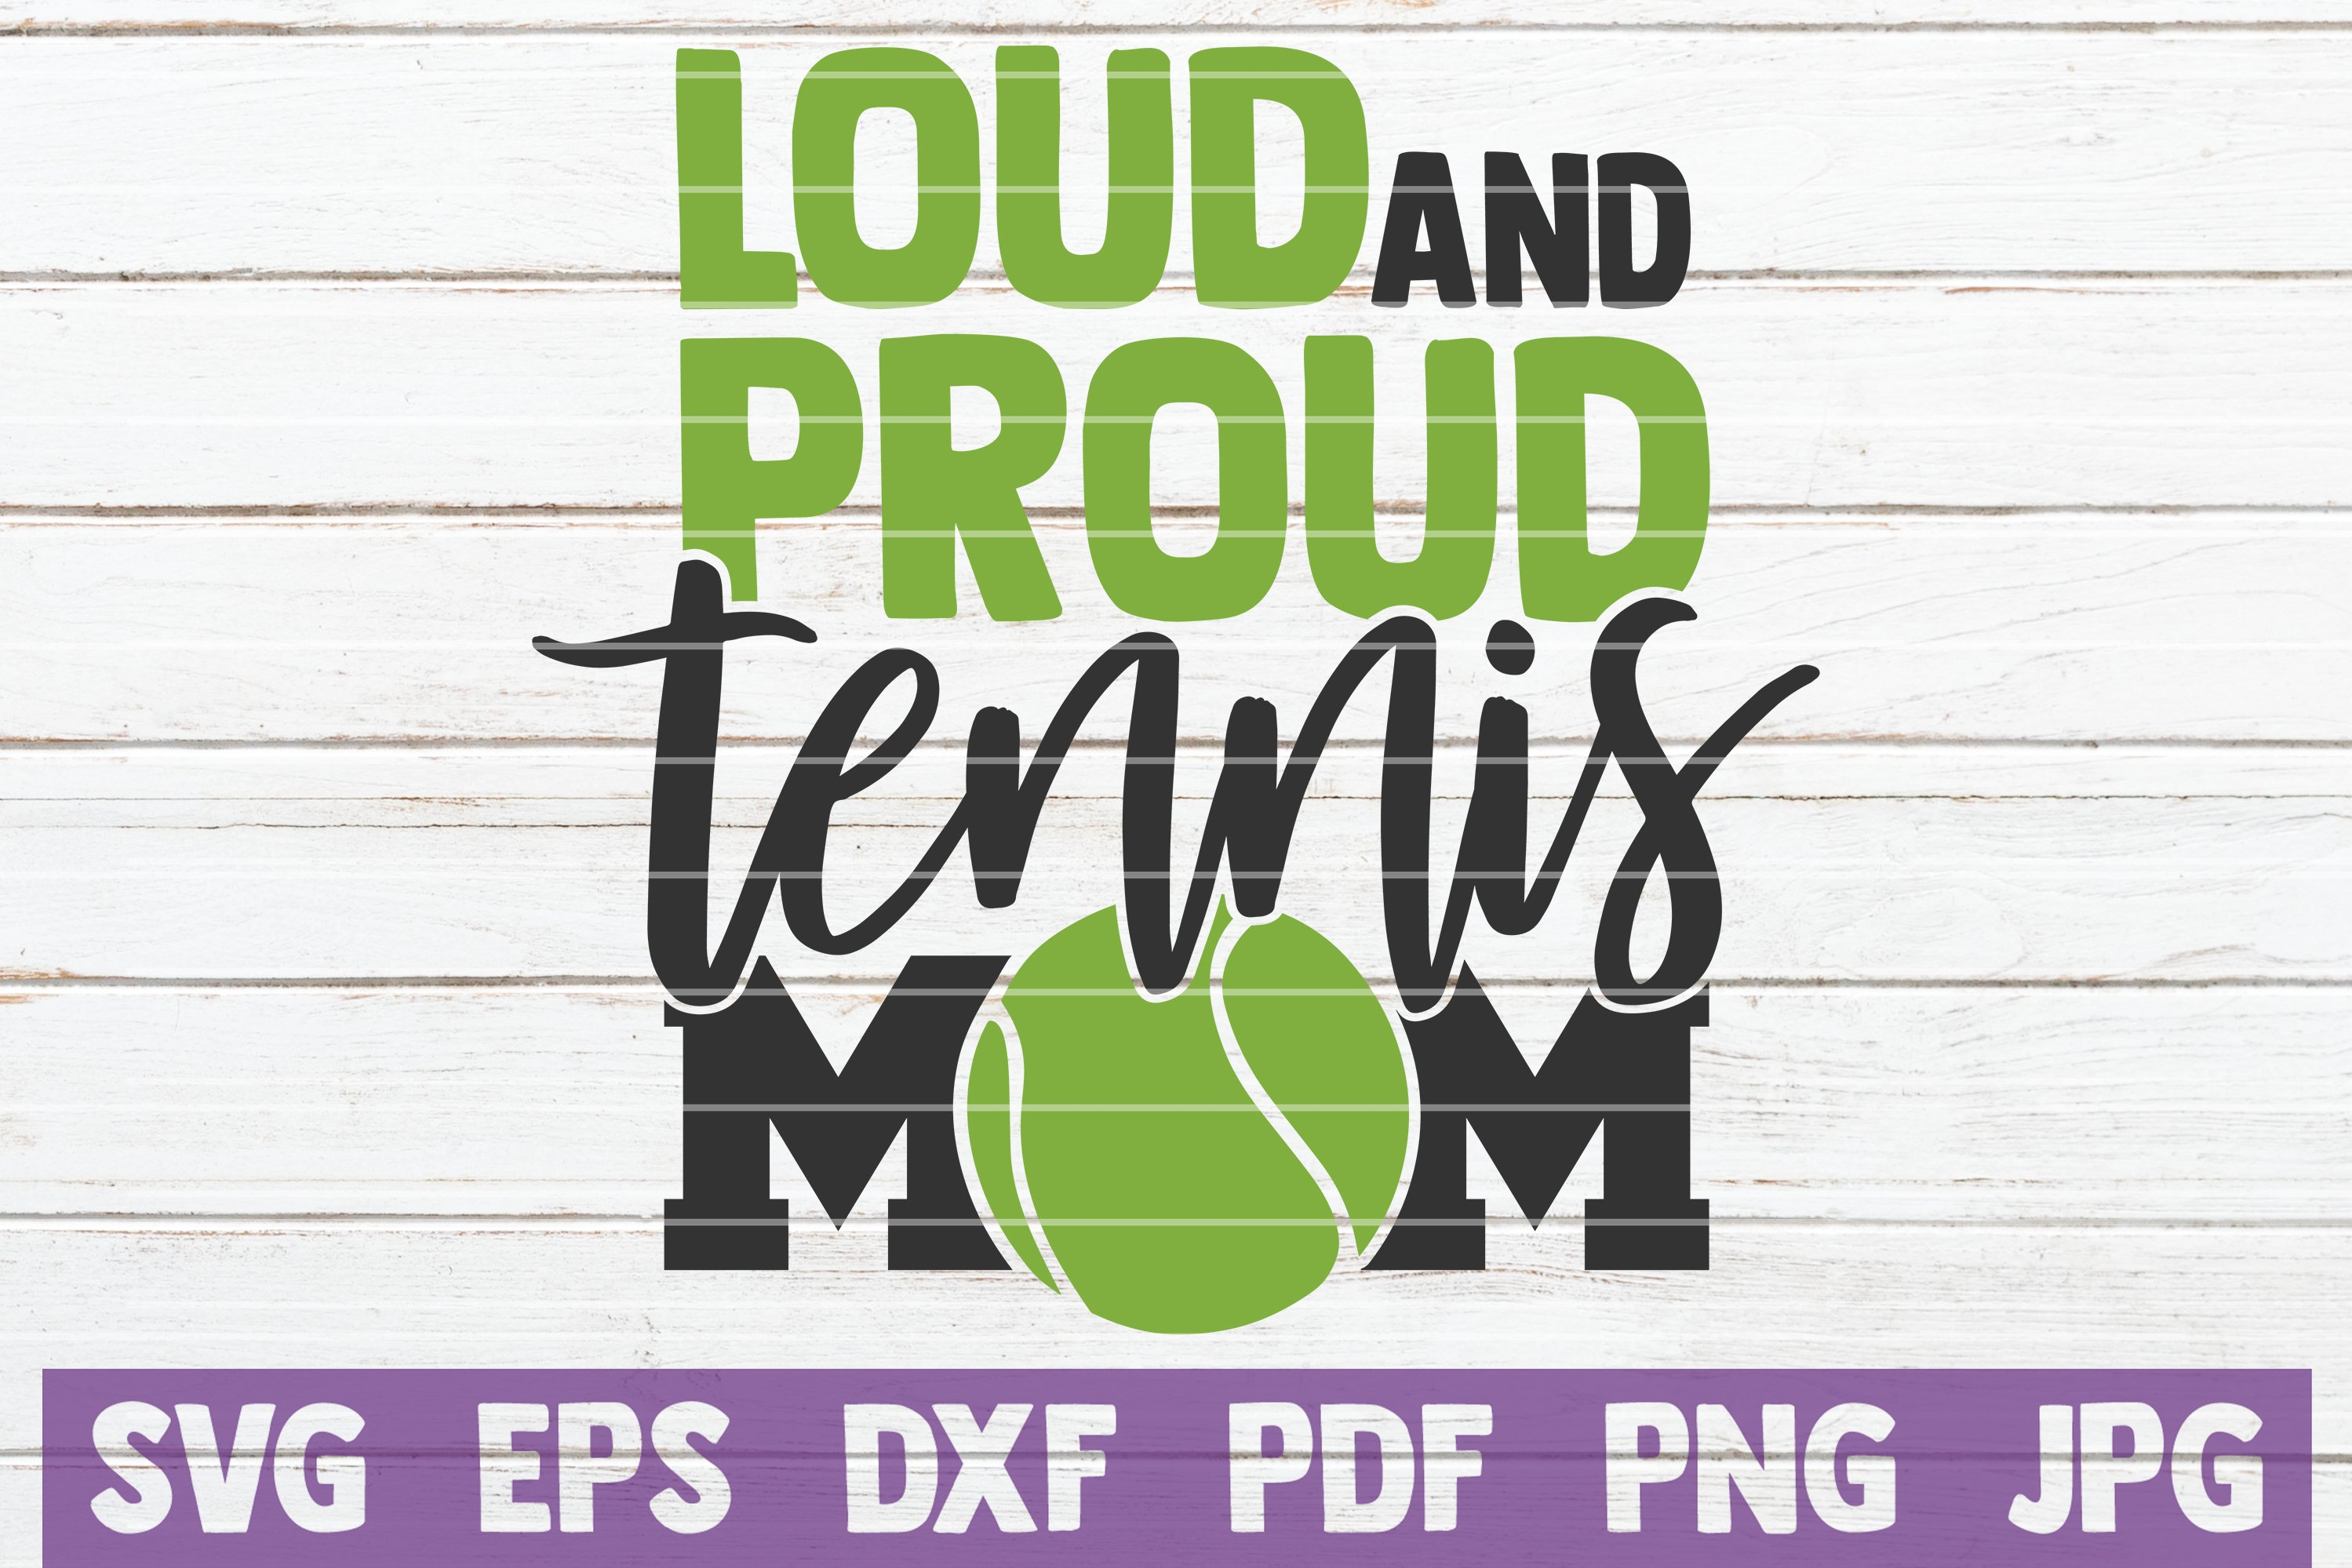 Loud And Proud Tennis Mom SVG Cut File example image 1